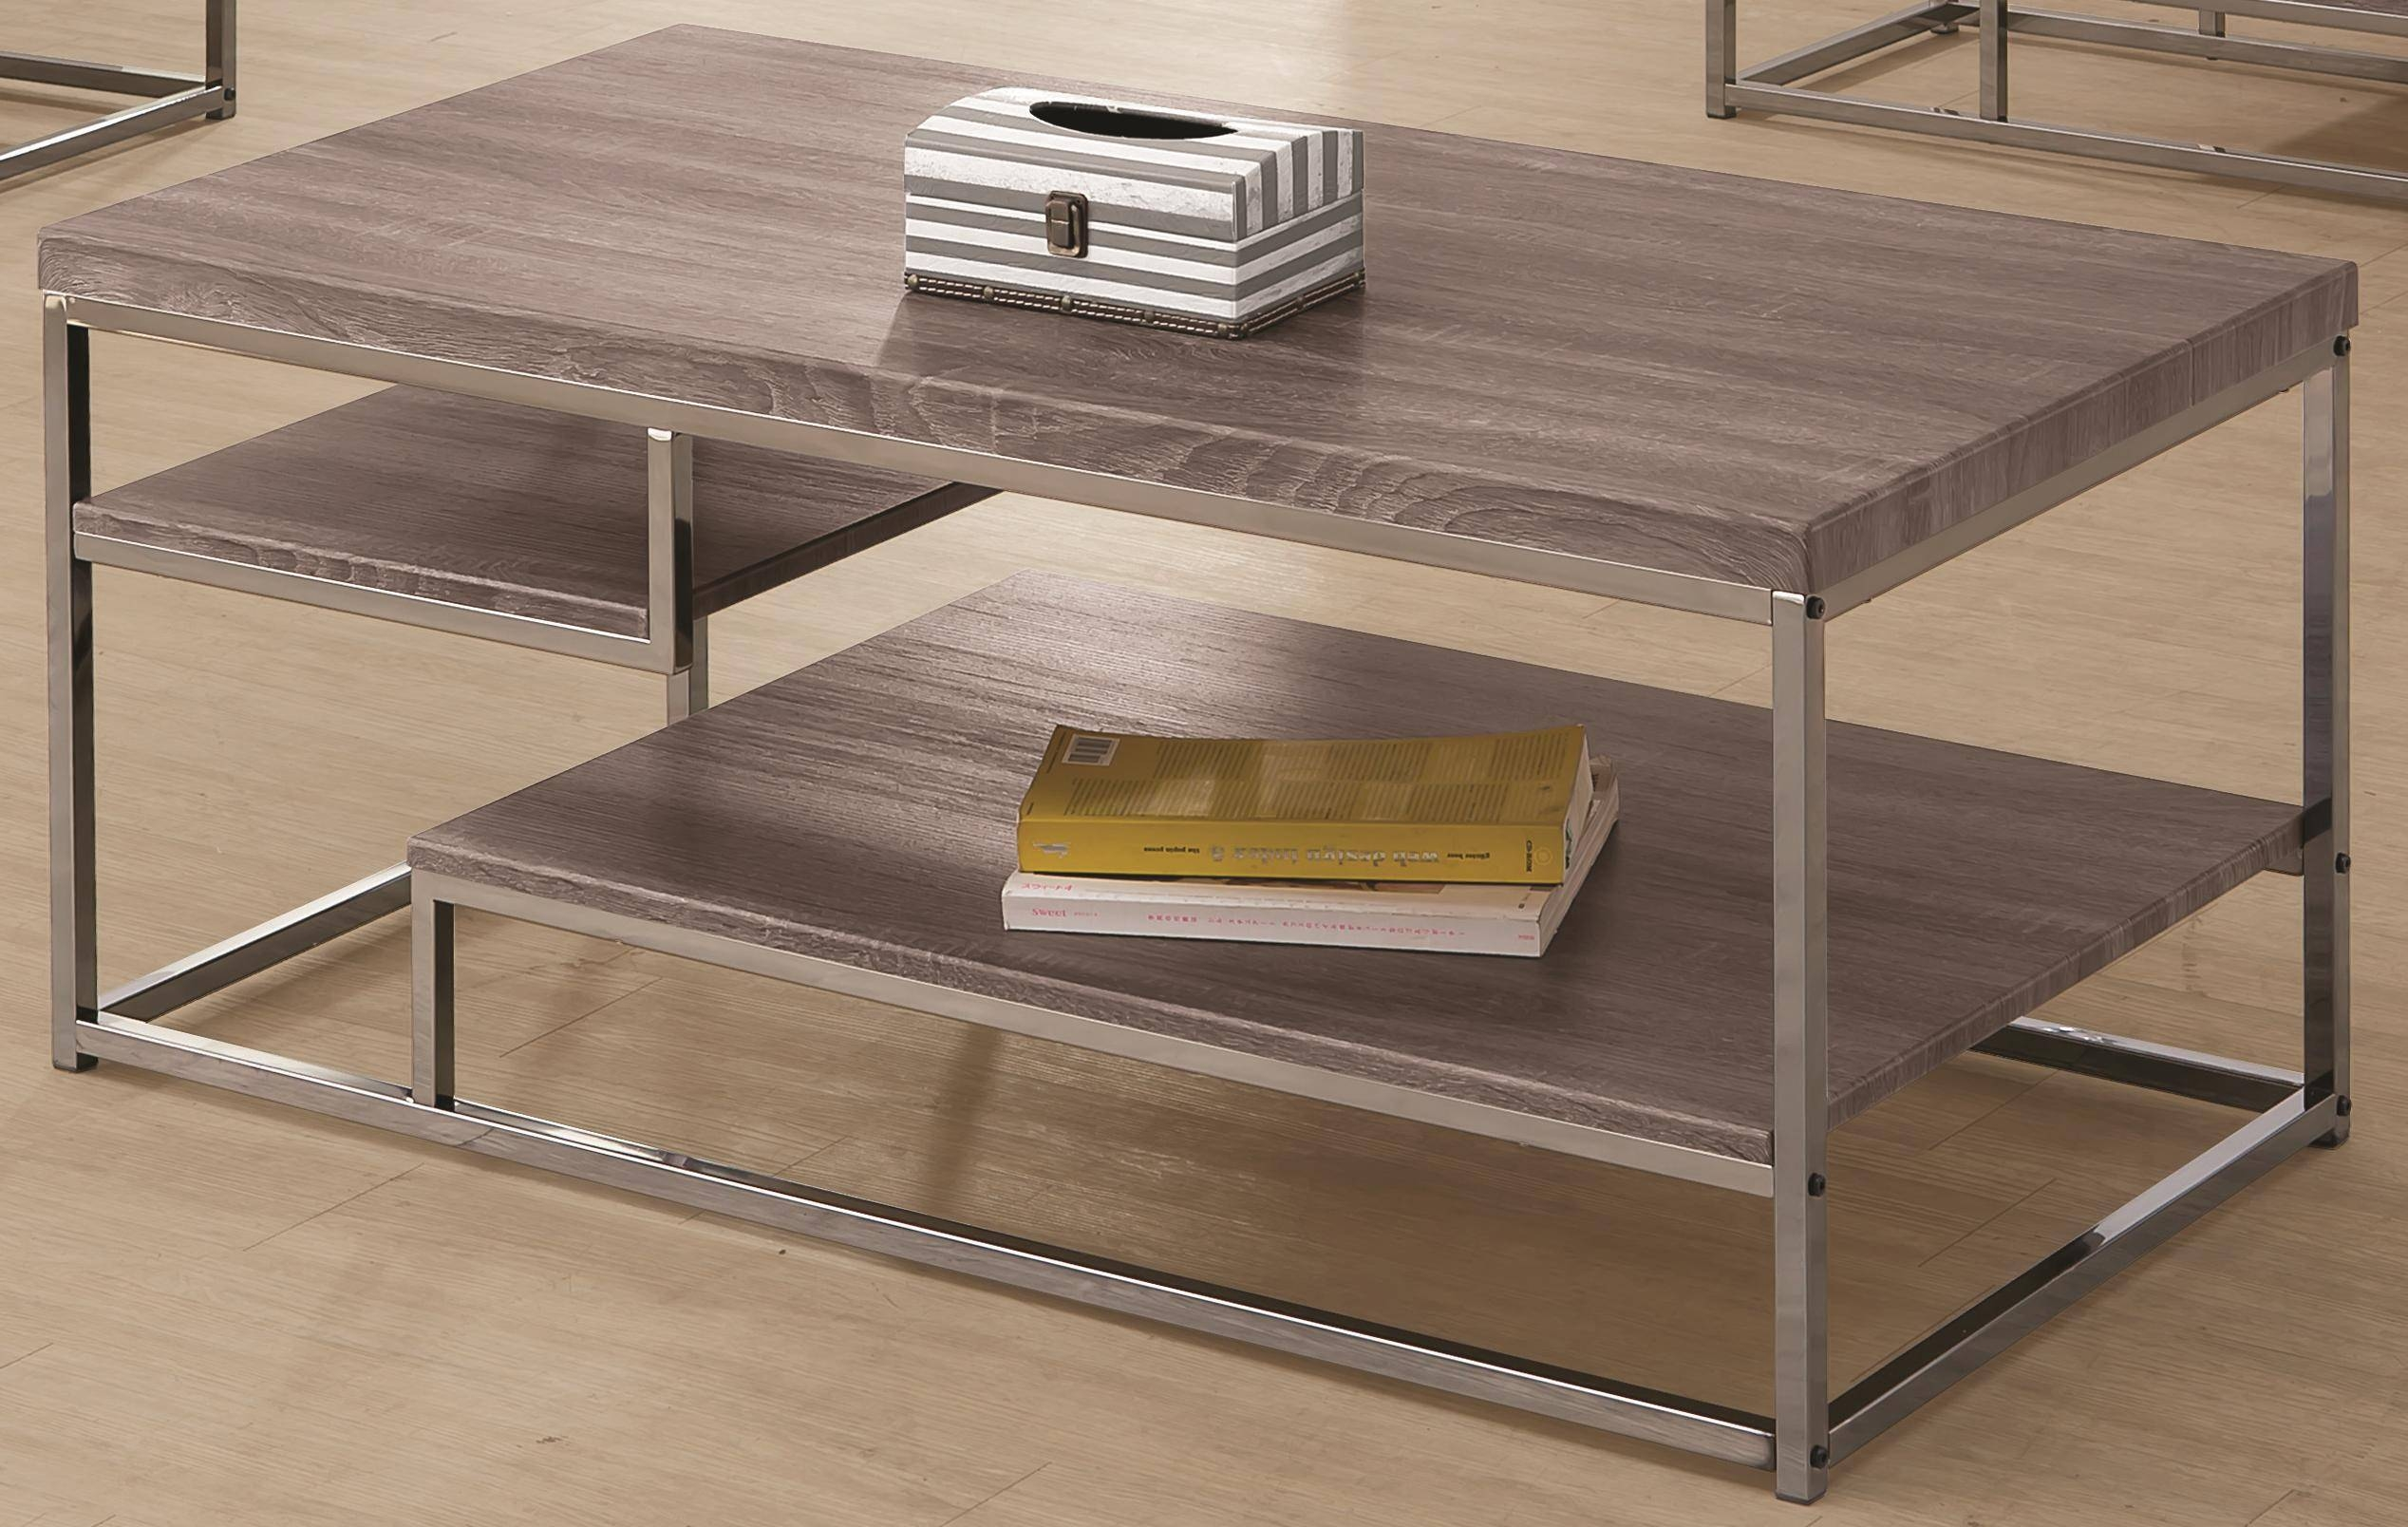 Coaster 7037 2 Shelf Coffee Table With Wood Top And Chrome Frame inside Wood Chrome Coffee Tables (Image 5 of 30)